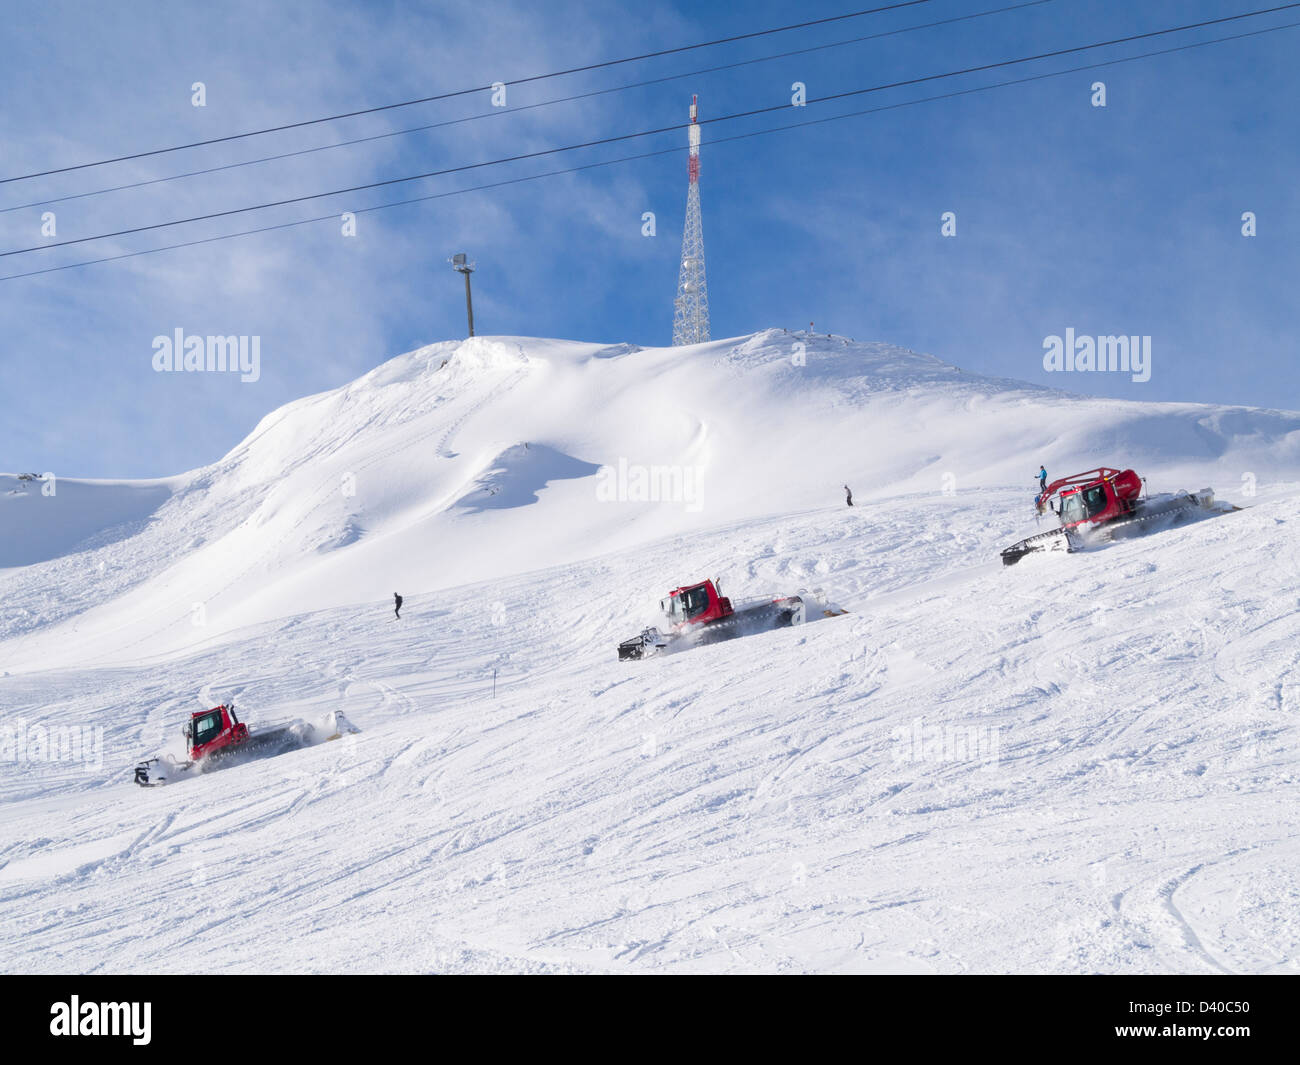 Snow bashers caterpillar tracked vehicles grooming the piste in St Anton, Tyrol, Austria, Europe - Stock Image